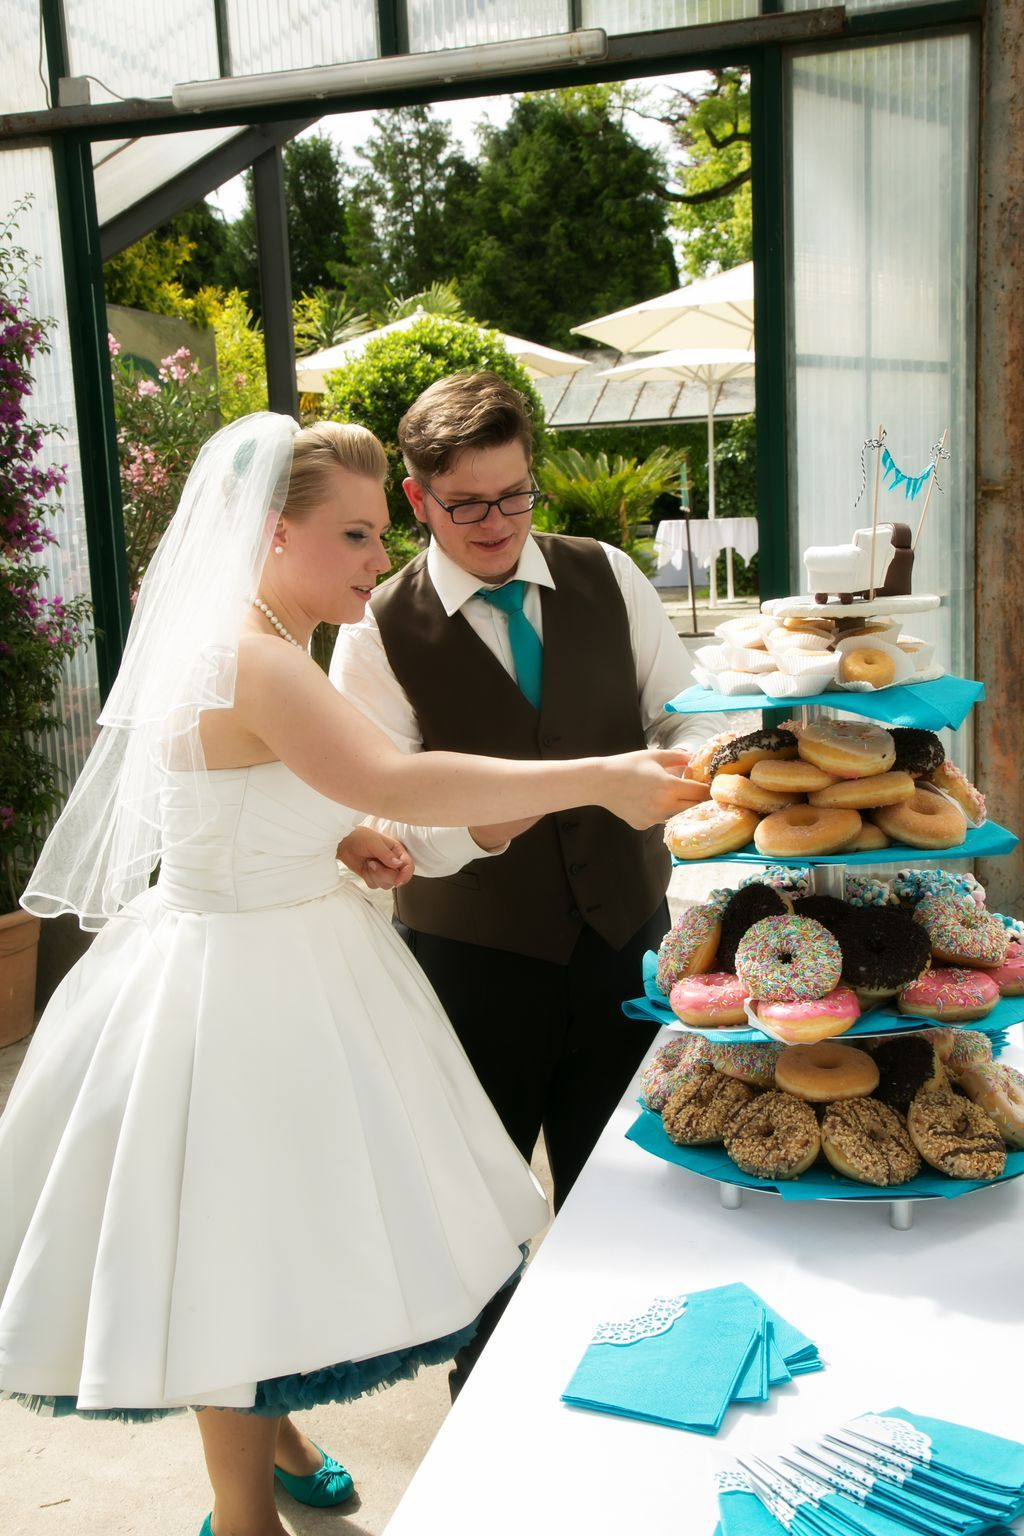 Creative wedding cake - DONUTS #vintage #wedding #hochzeit #braut ...